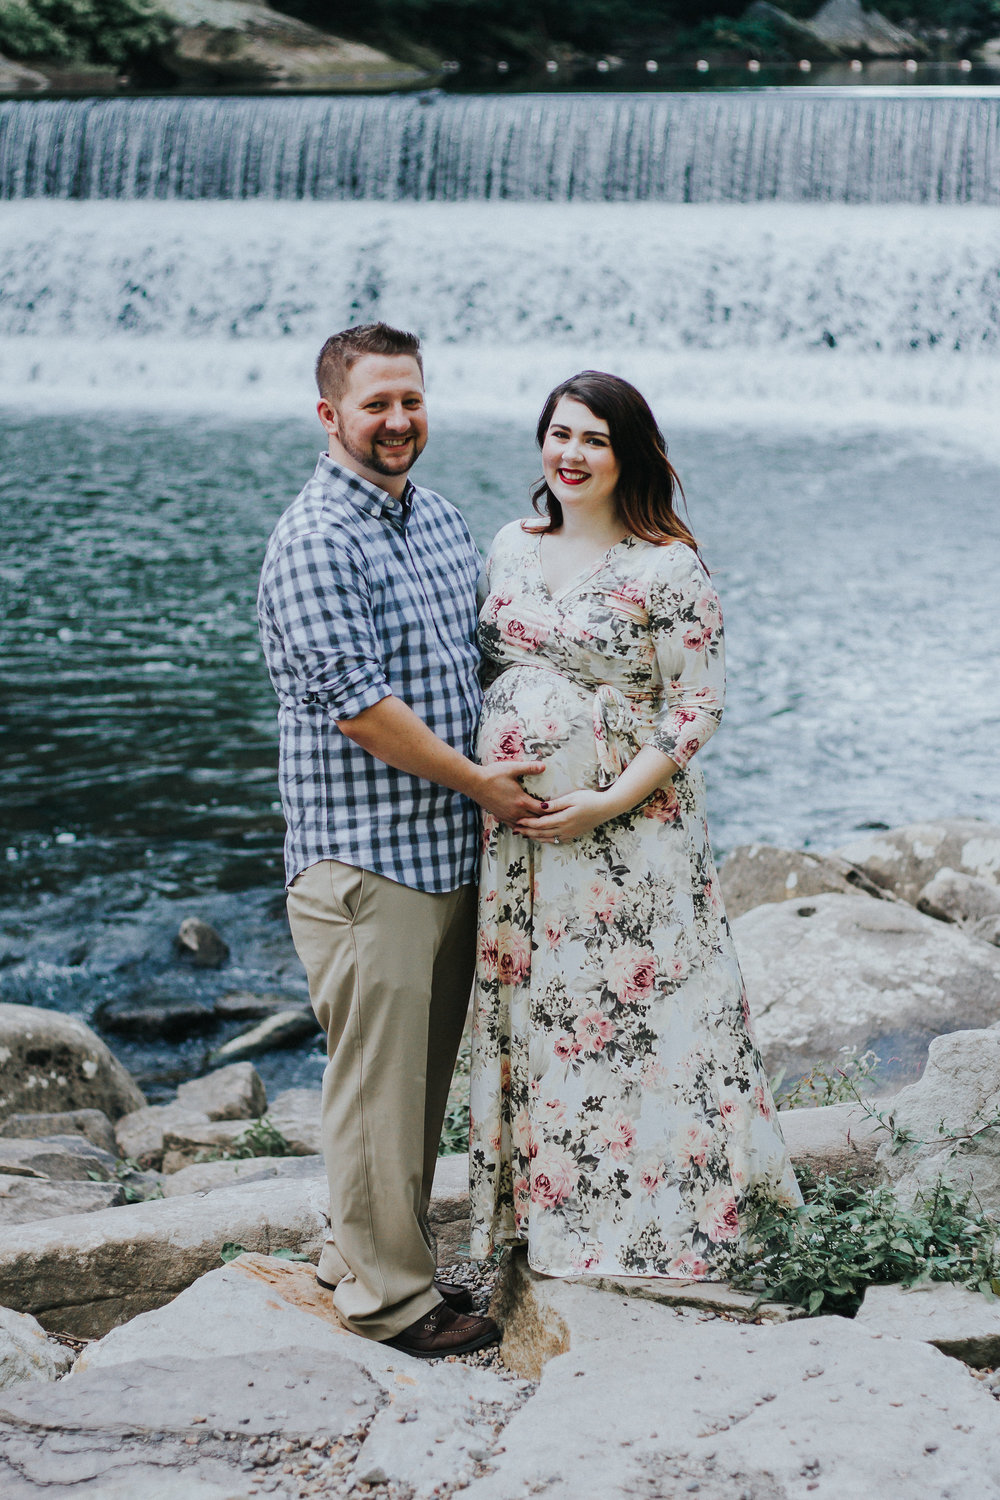 Couple smiling in front of waterfall, Artistic + Woodsy Maternity Session | Sarah P Thomas Photography